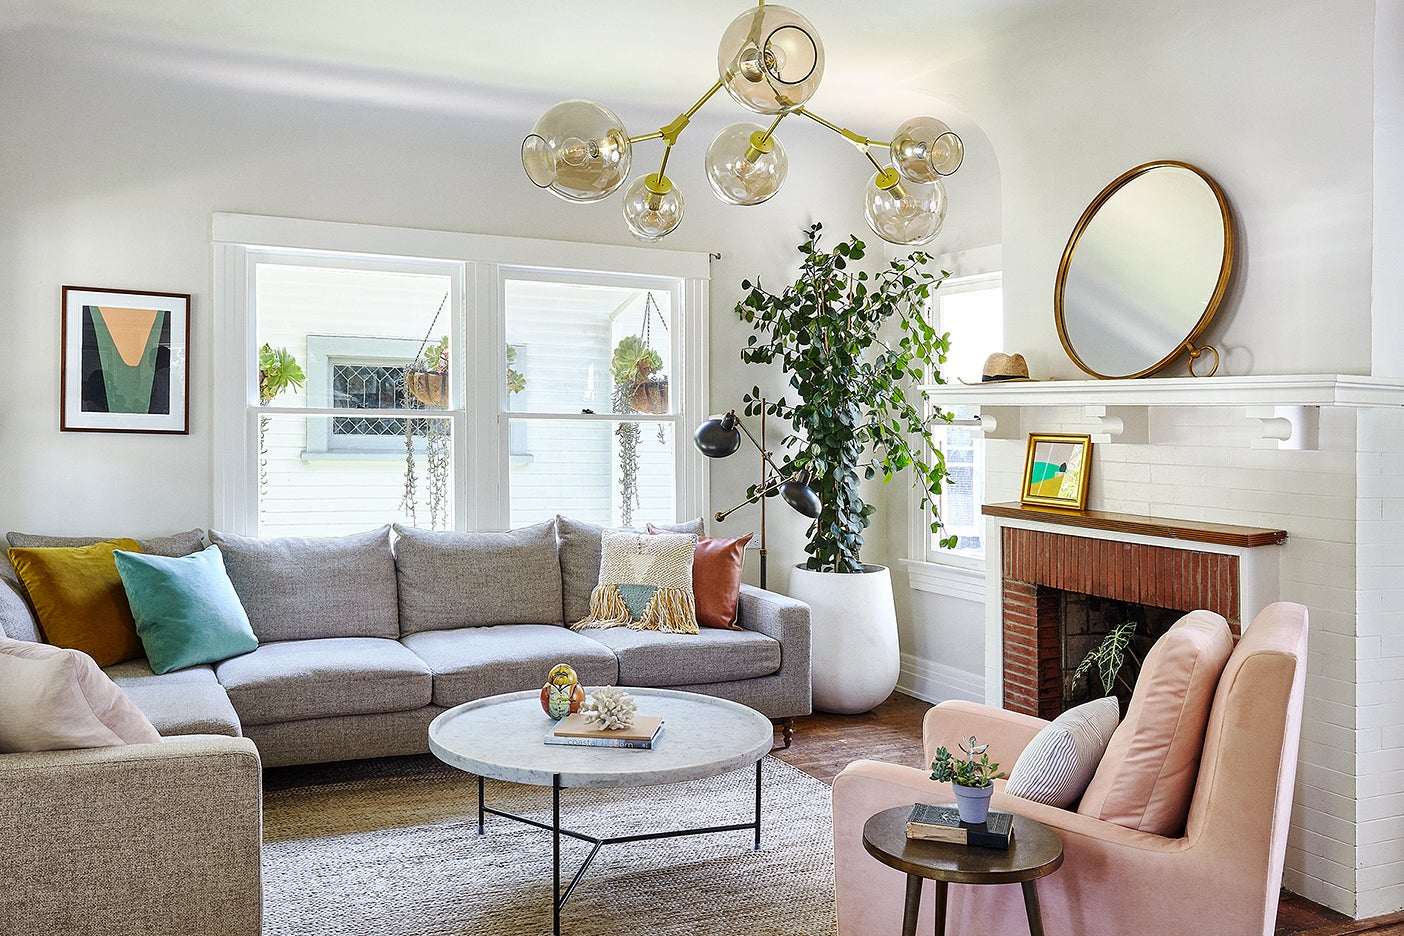 Living room with gray sofa and pink chair